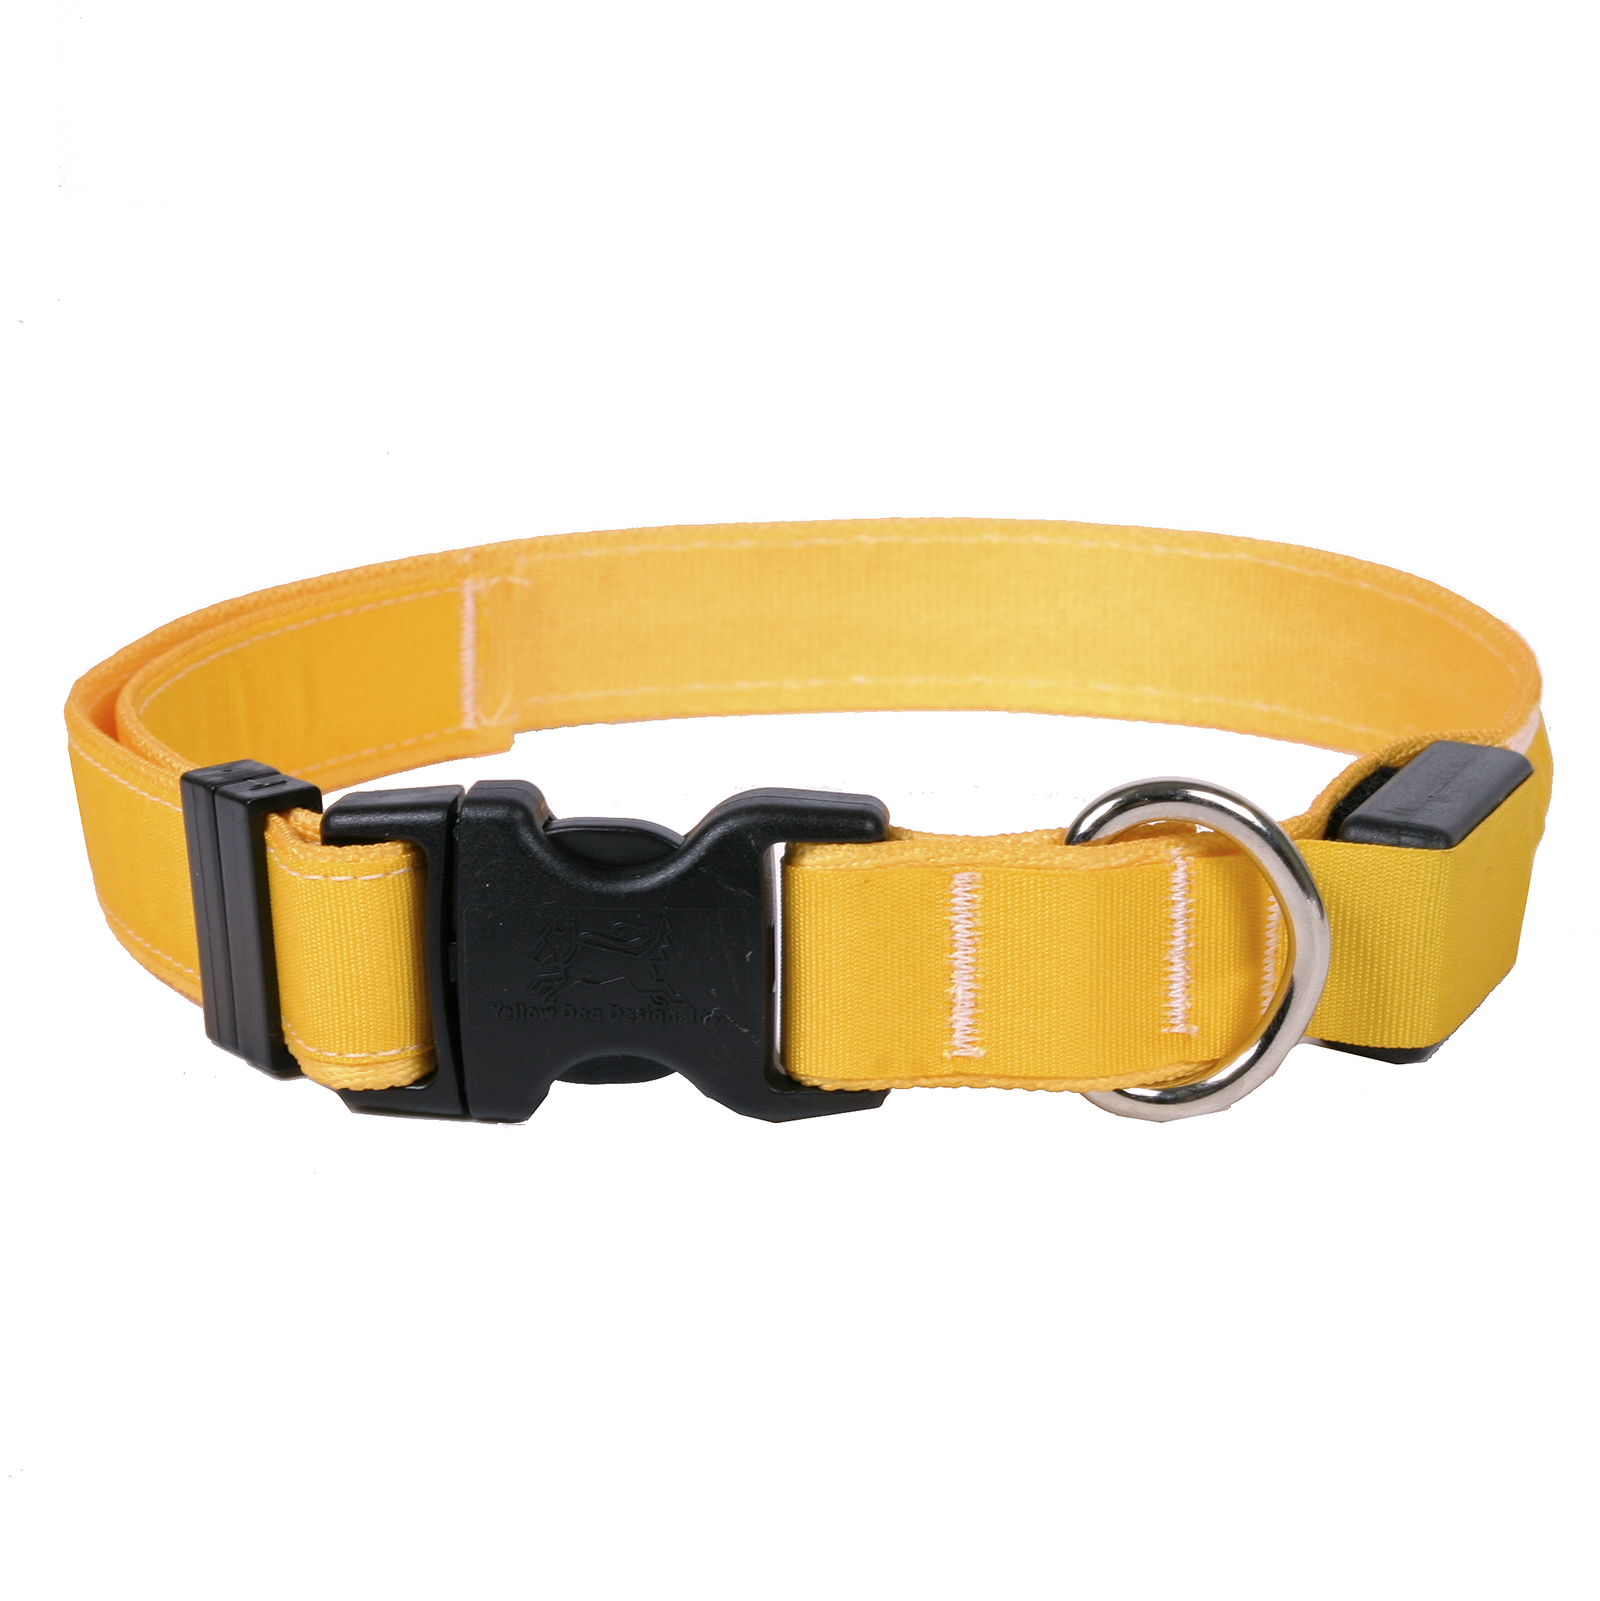 Solid Goldenrod ORION LED Dog Collar